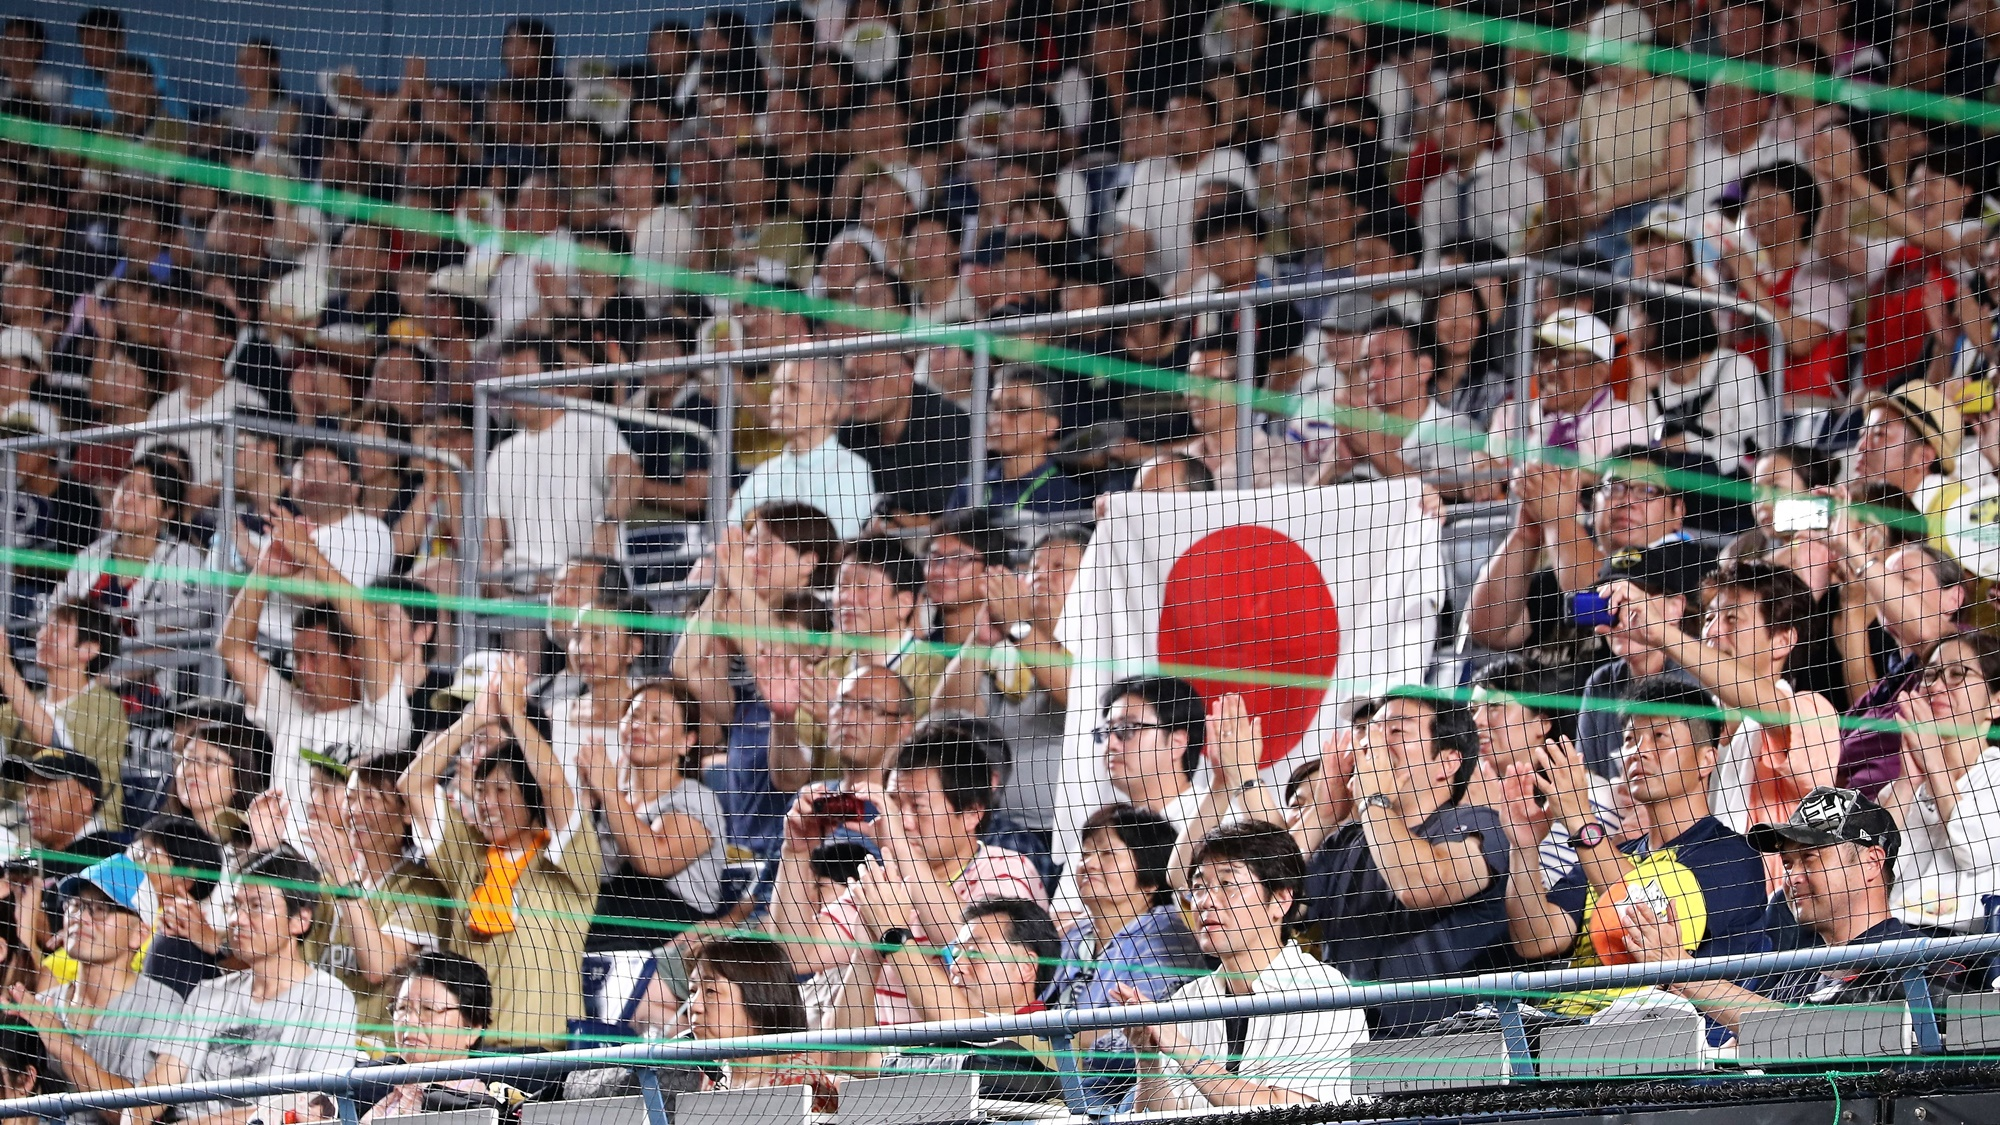 A raucous crowd of over 11,000 supported Japan